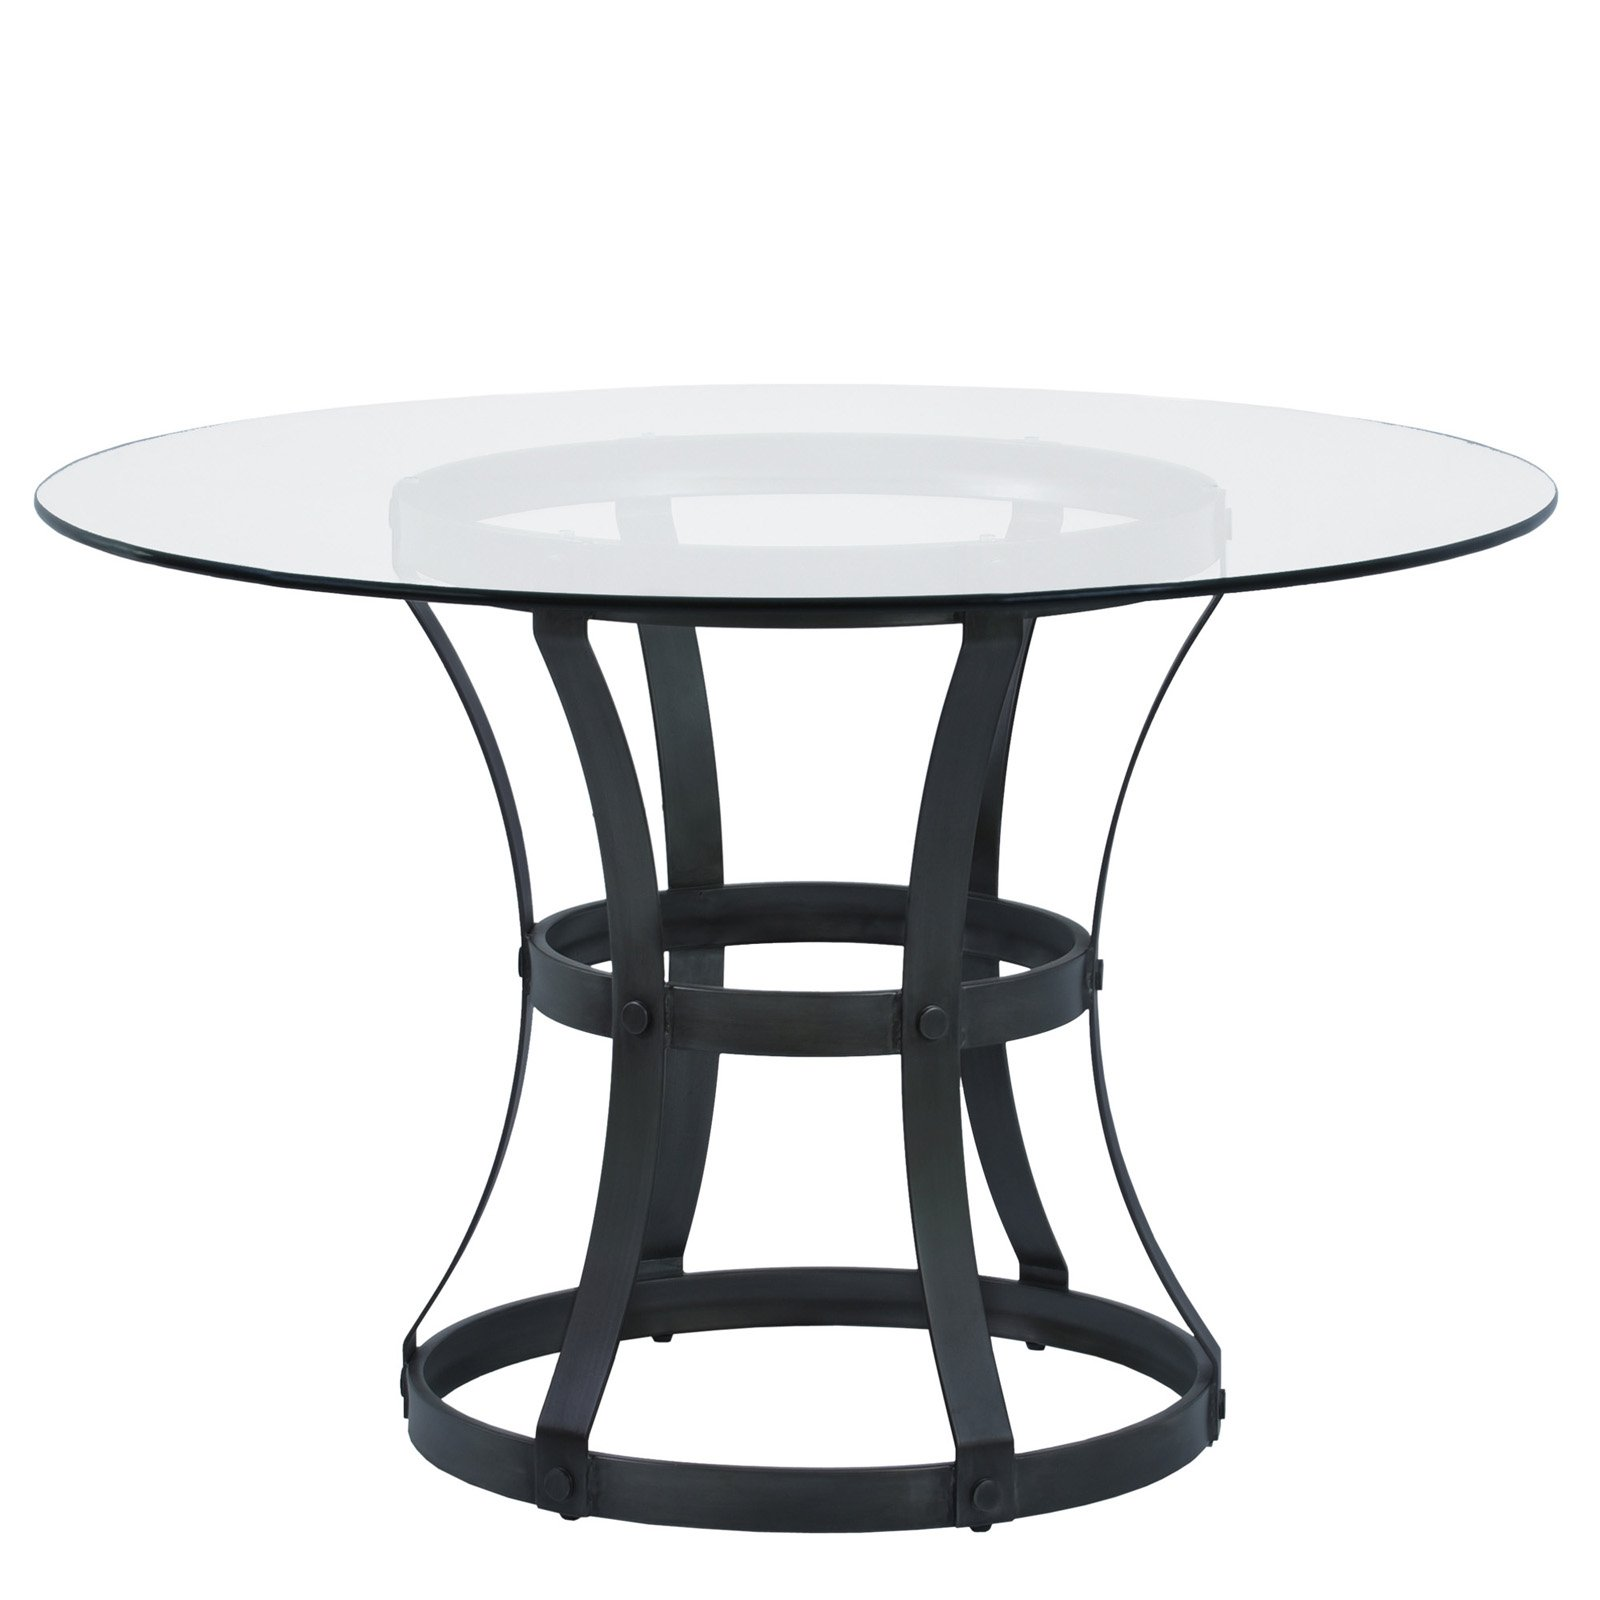 "Armen Living Vancouver Round Dining Table with Finish and 48"" Glass Top"